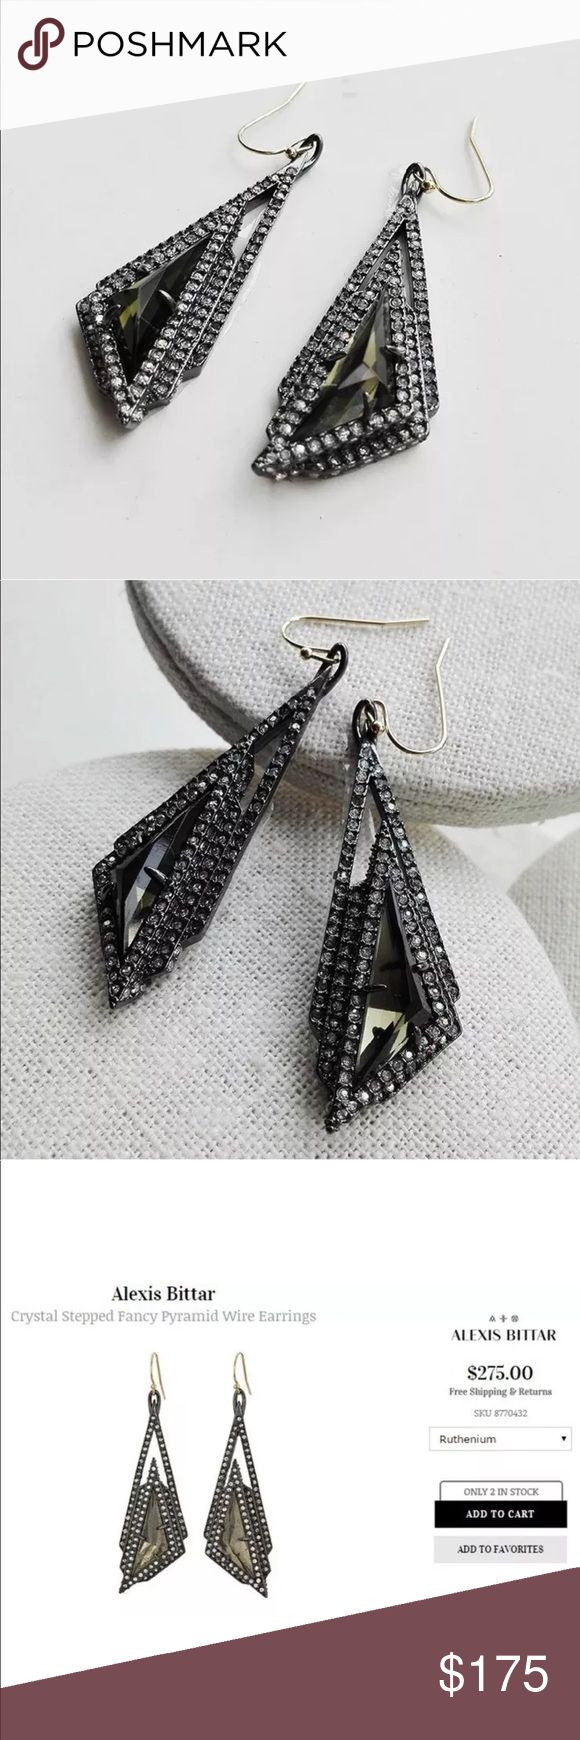 Alexis Bittar Ruthenium Crystal Origami Earrings Alexis Bittar Ruthenium Crystal Origami Earrings • never worn just removed tags and tried on! Beautiful green/grey stone encrusted with tiny crystals in ruthenium (gunmetal gray/silver). Alexis Bittar Jewelry Earrings